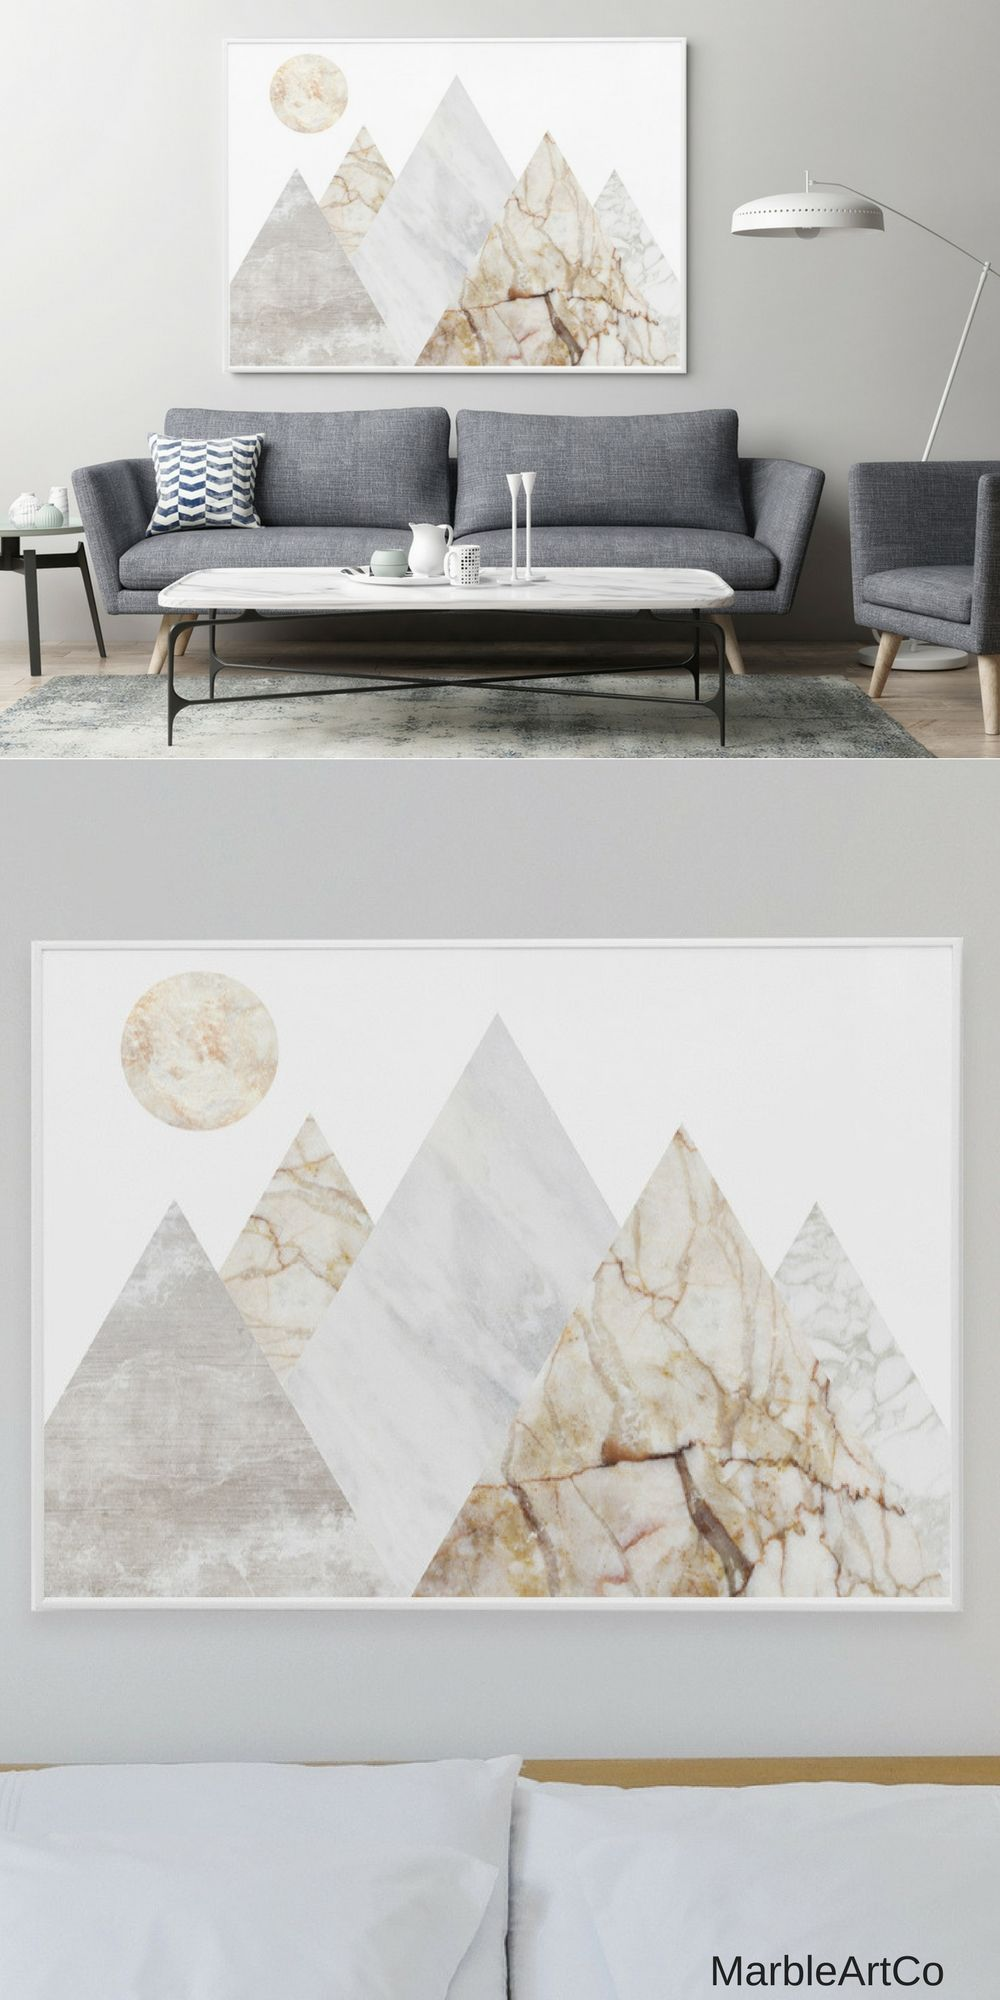 Sensational Mountains Extra Large Wall Art Bedroom Decor Nature Framed Home Interior And Landscaping Ologienasavecom